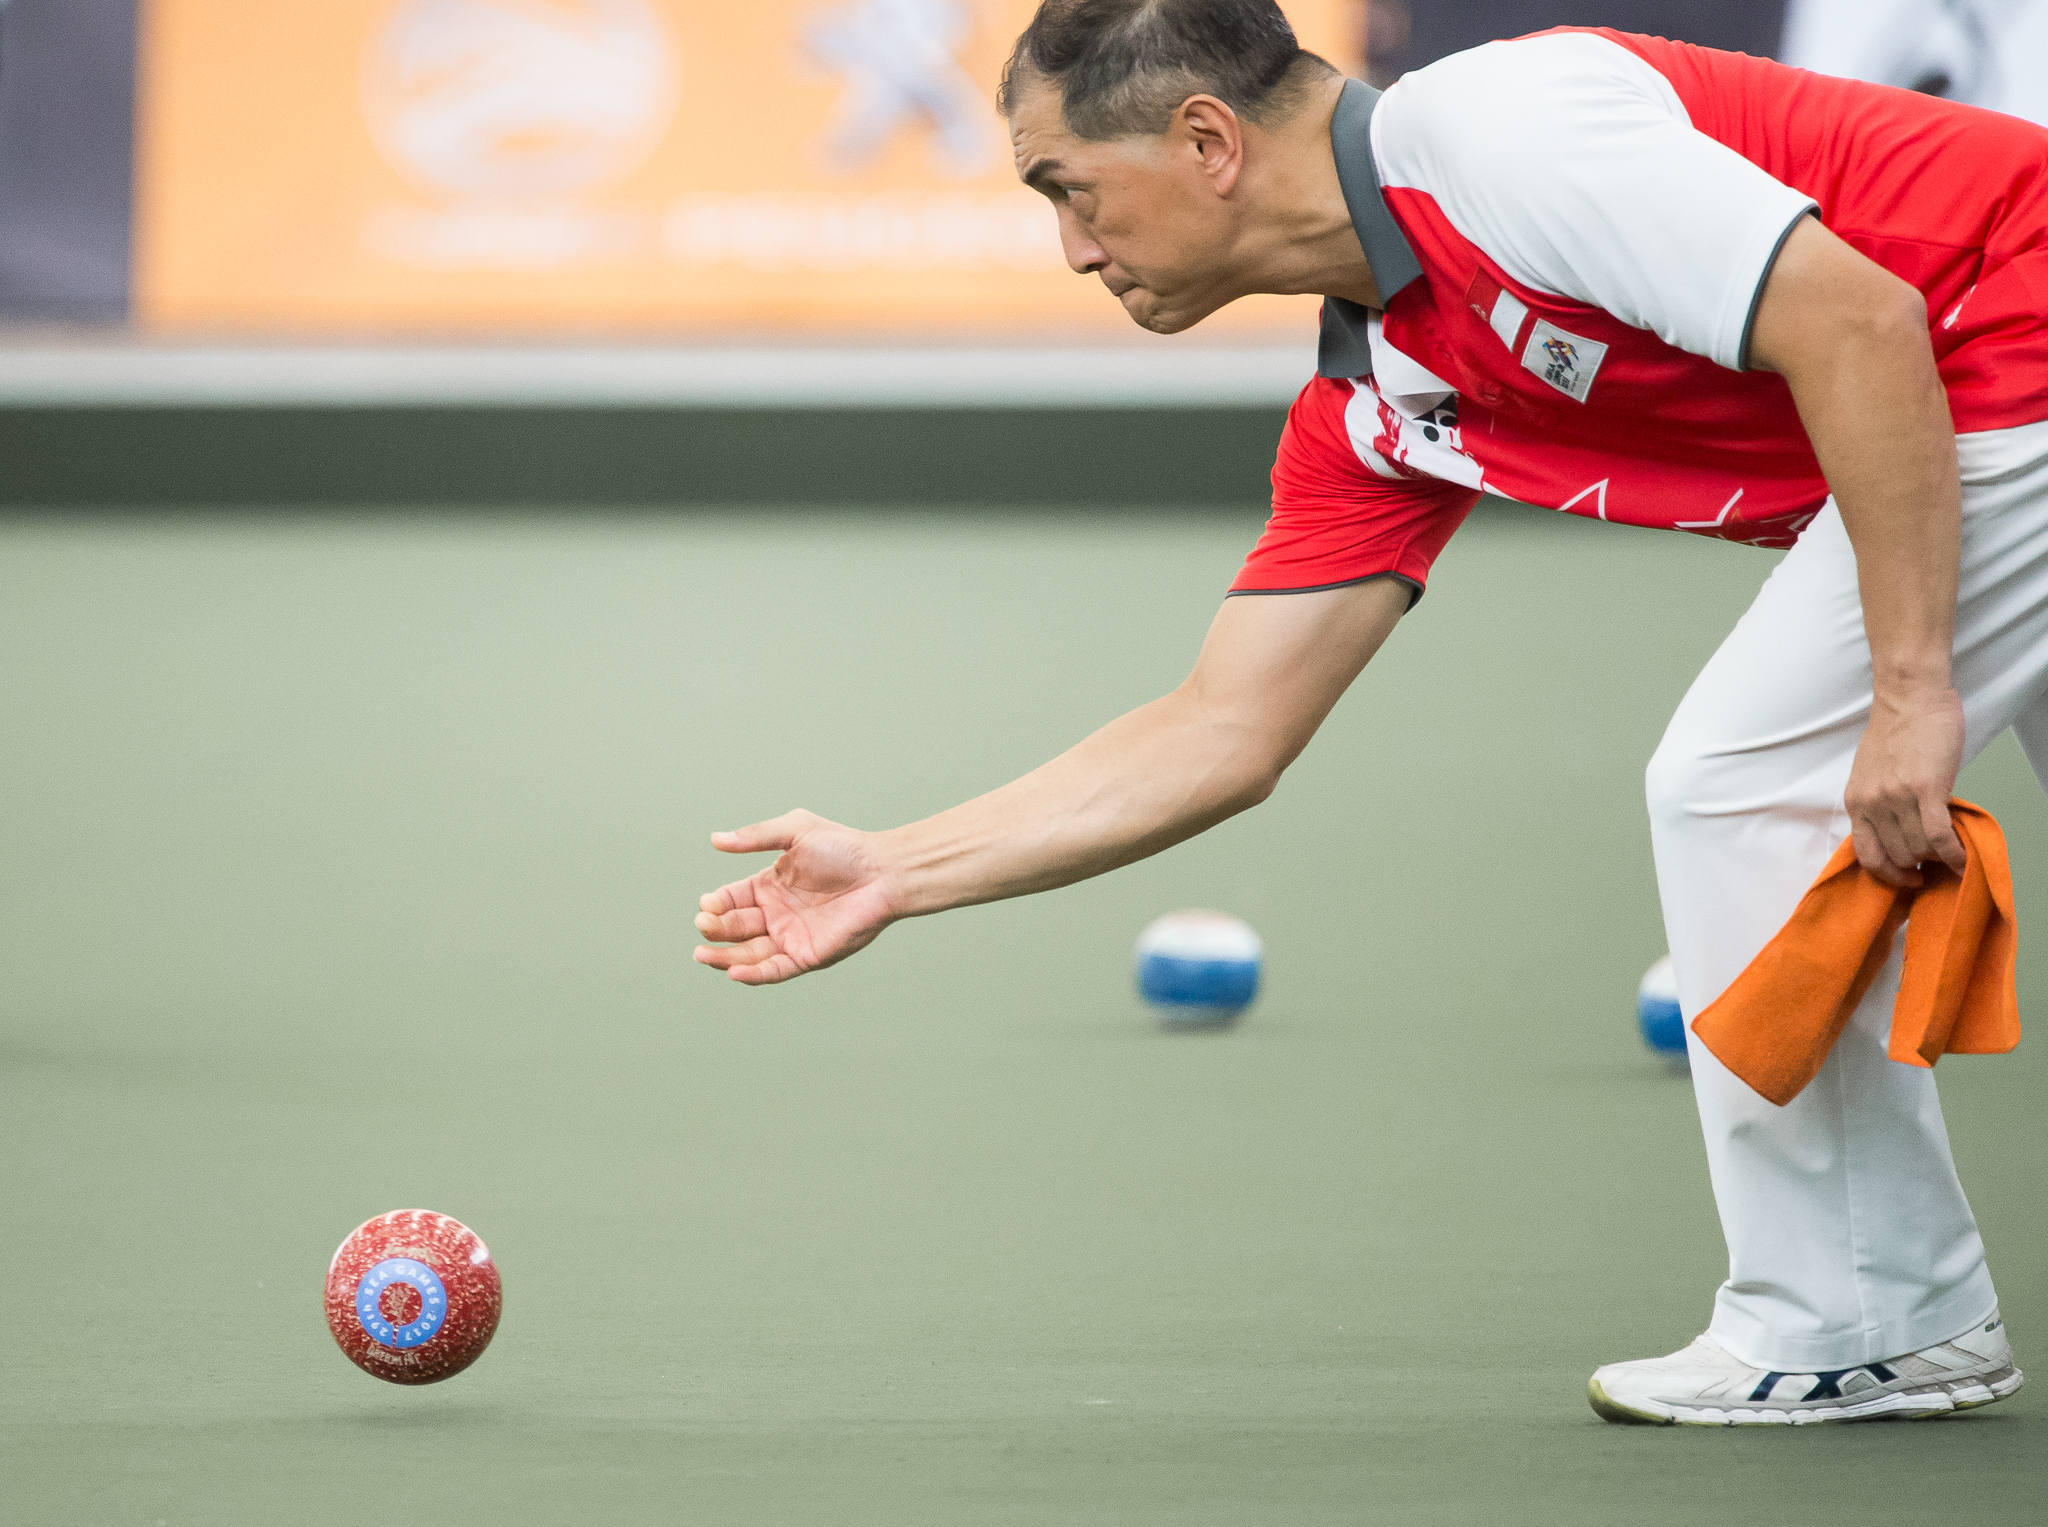 A Singaporean Lawn Bowler in action during the SEA Games at the National Lawn Bowls Centre.